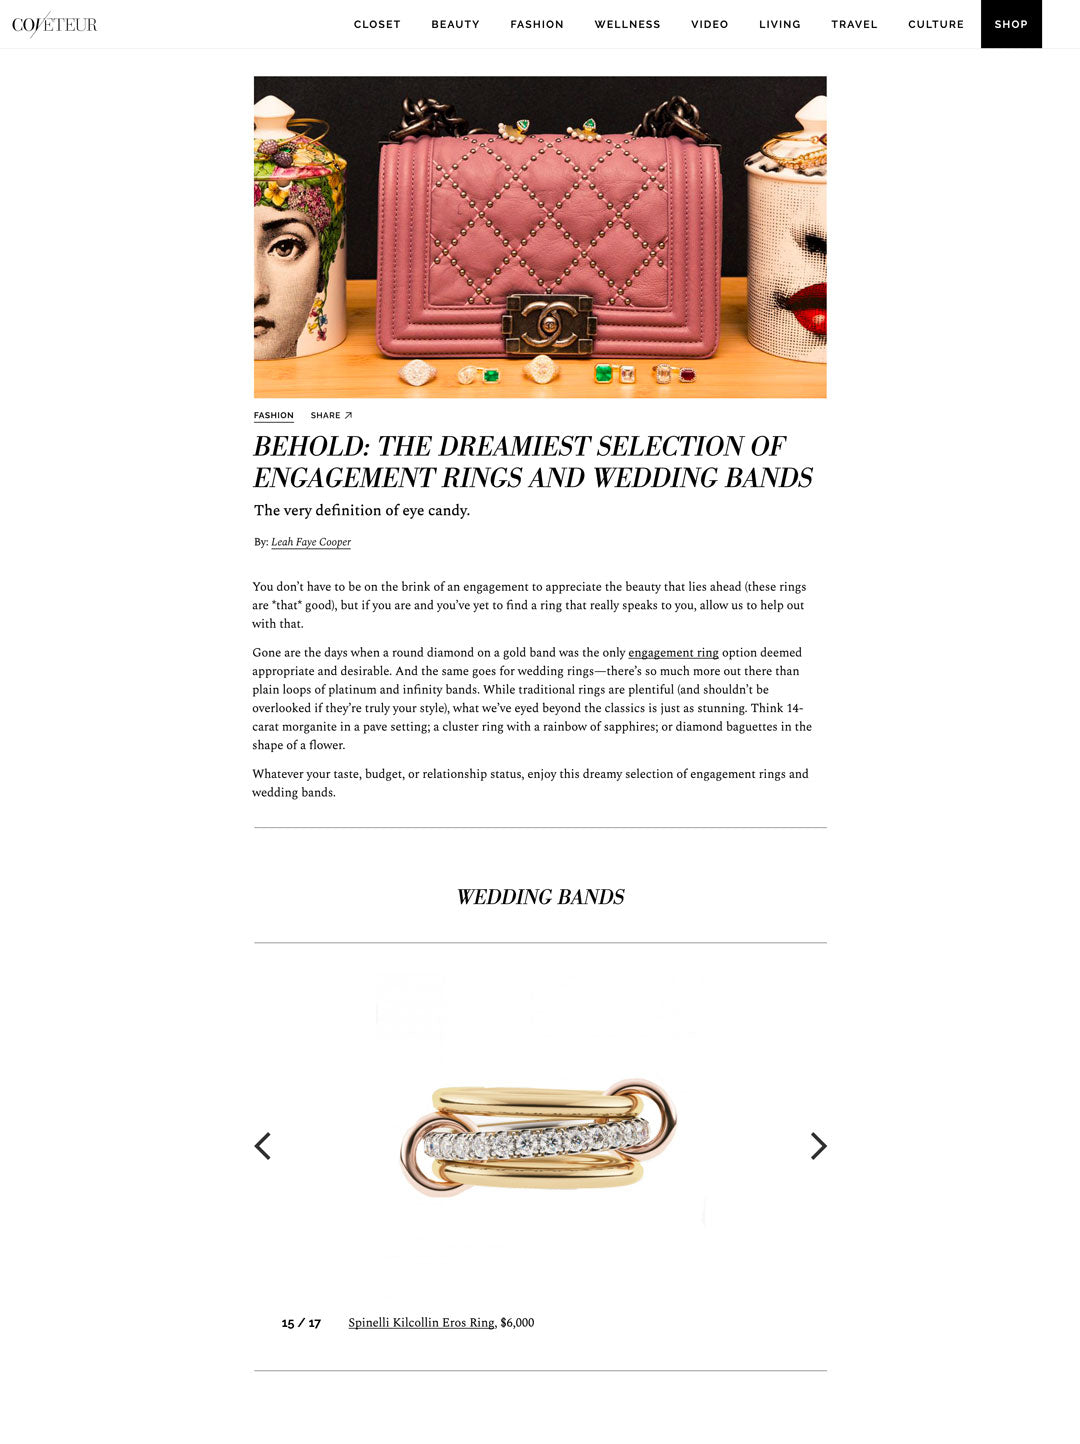 coveteur spinelli kilcollin eros-ring linked-ring luxury-jewelry diamond ring los angeles